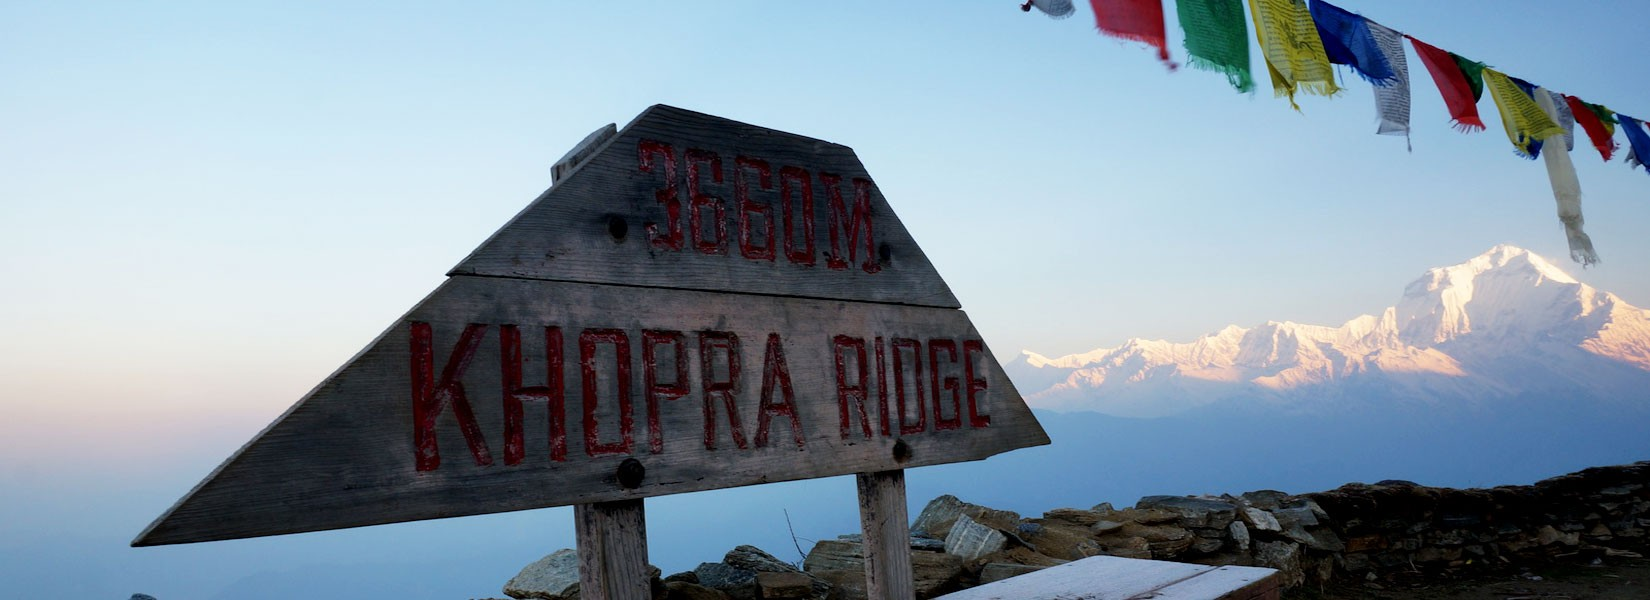 Khopra Ridge Trek